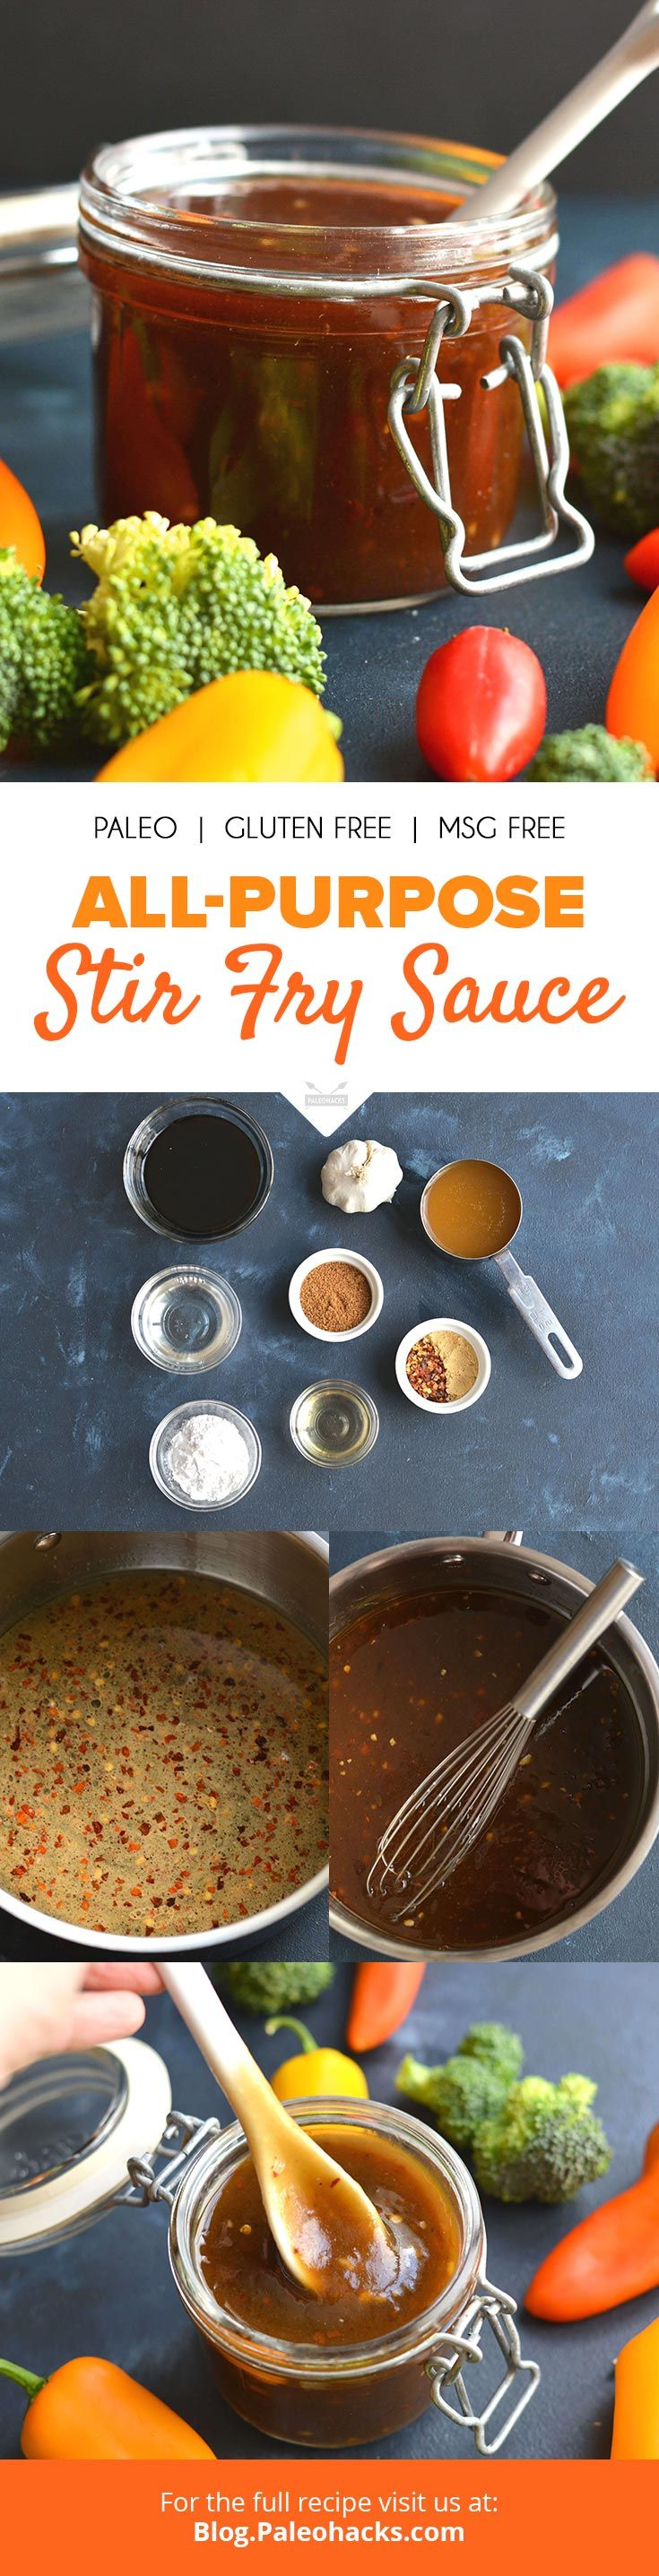 Smother this stir fry sauce all over your favorite veggies, chicken, beef, fish, or pork! Get the recipe here: http://paleo.co/stirfrysaucercp